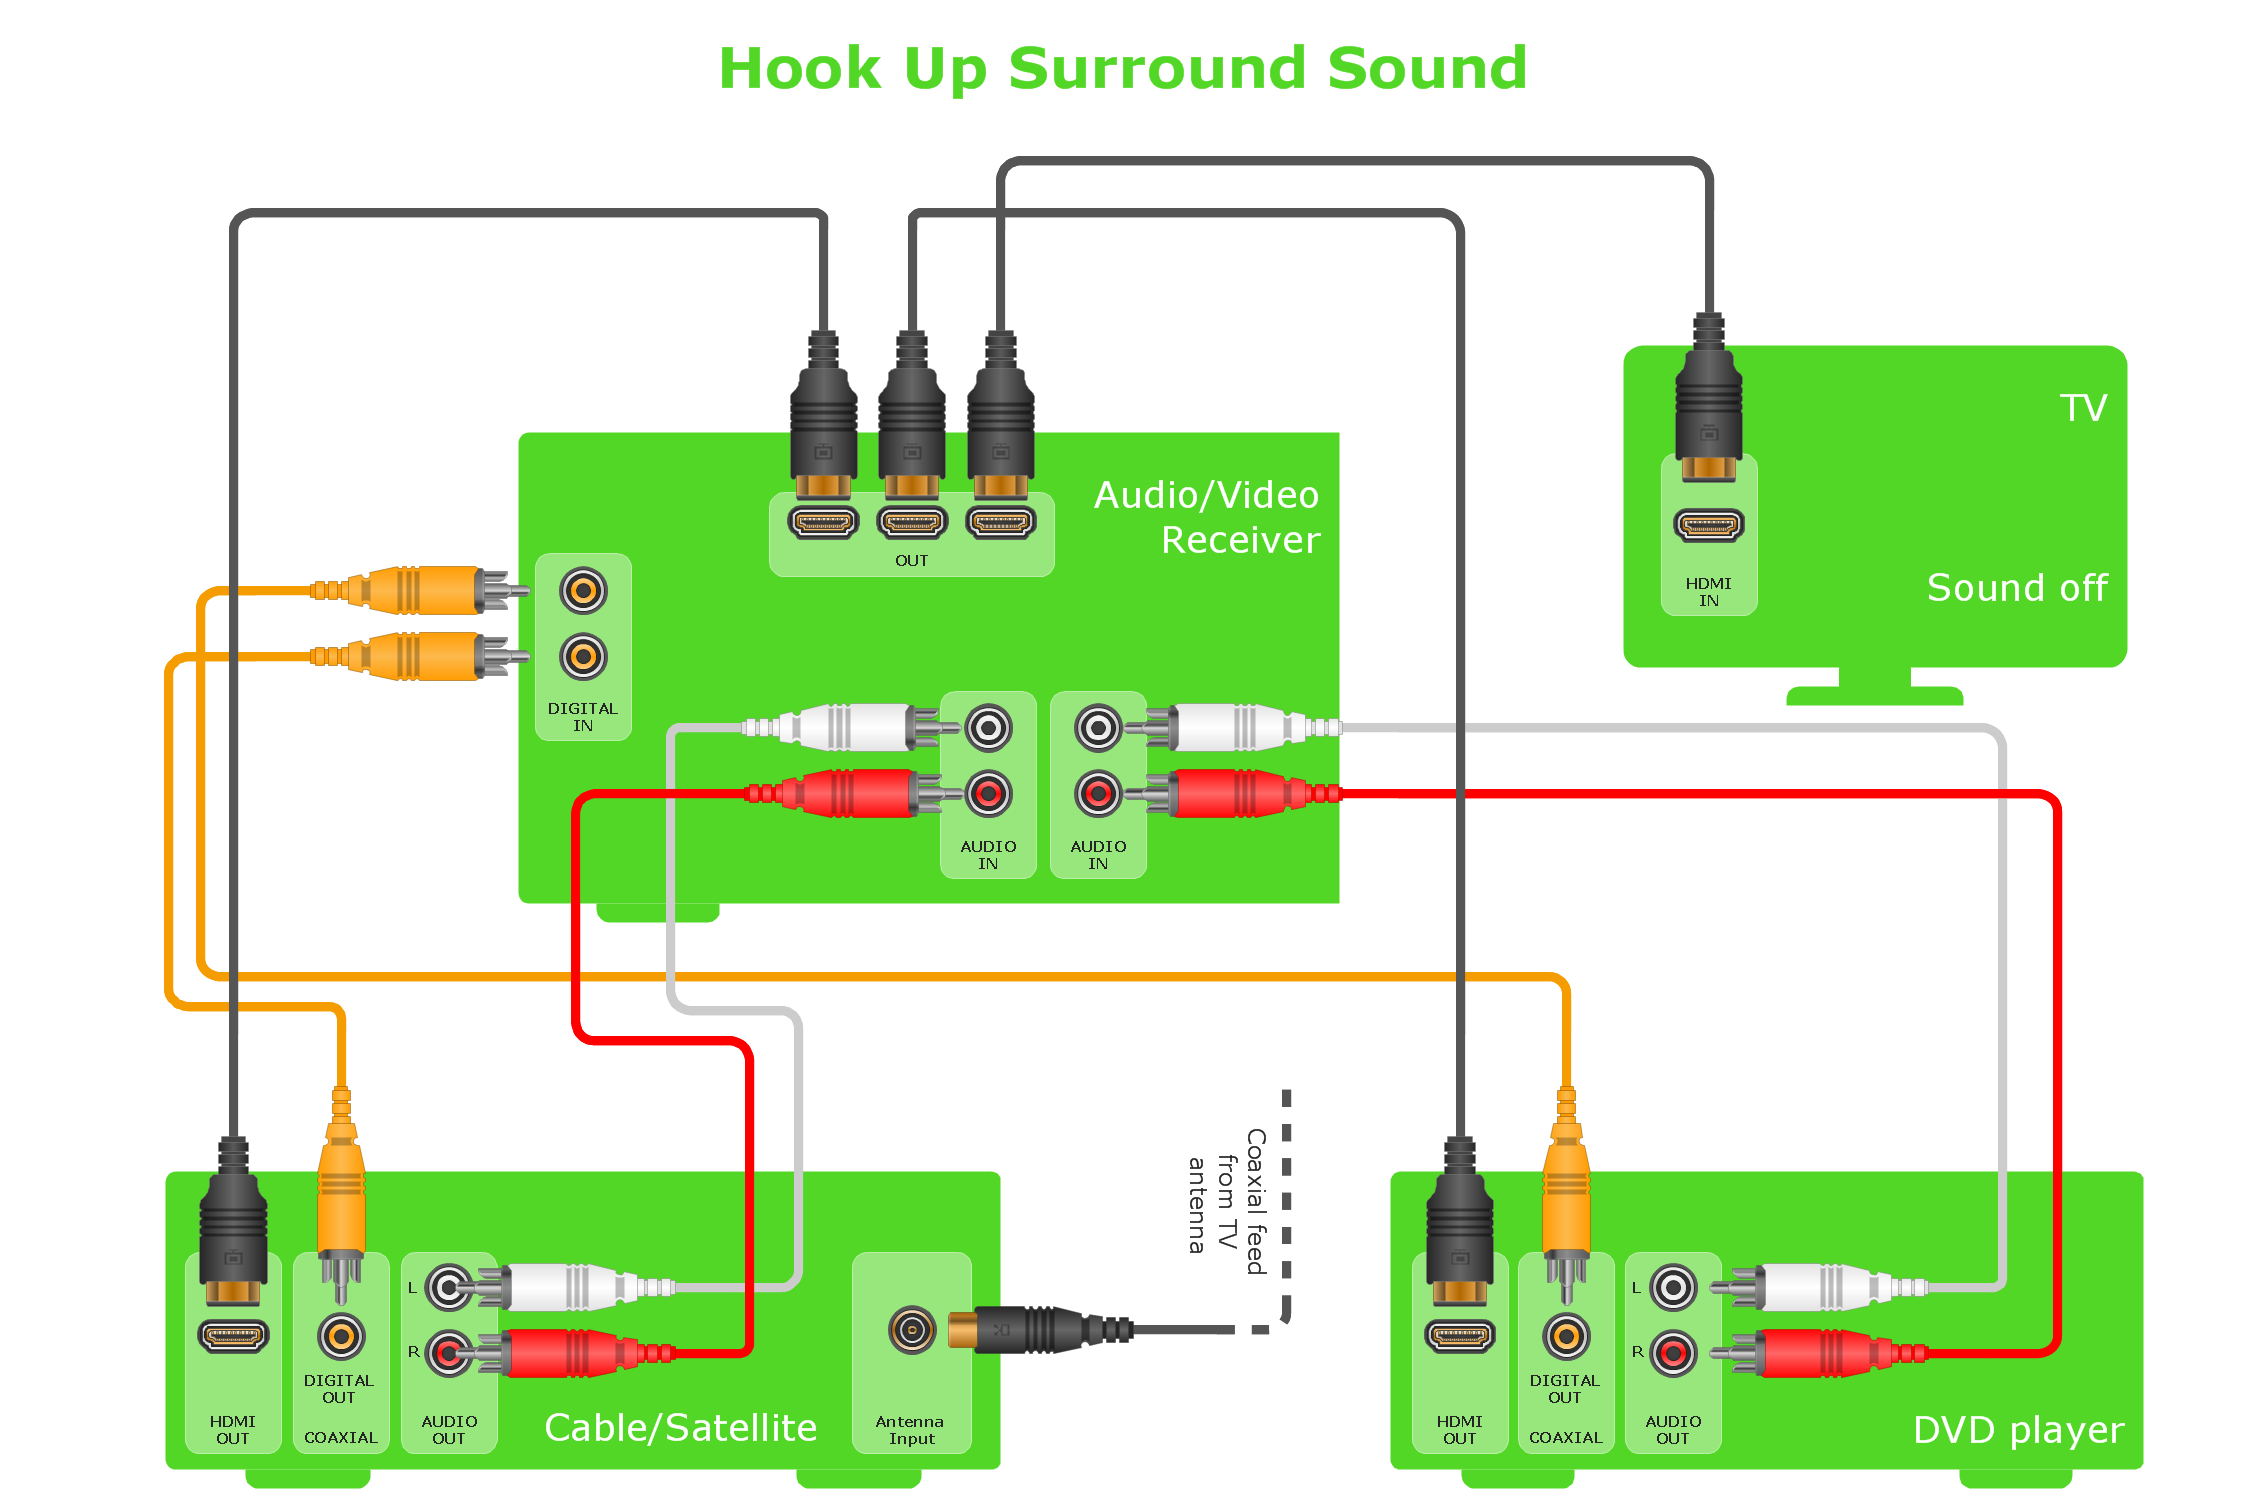 how to create a hook up diagram | hook up diagram - stereo audio, Wiring diagram